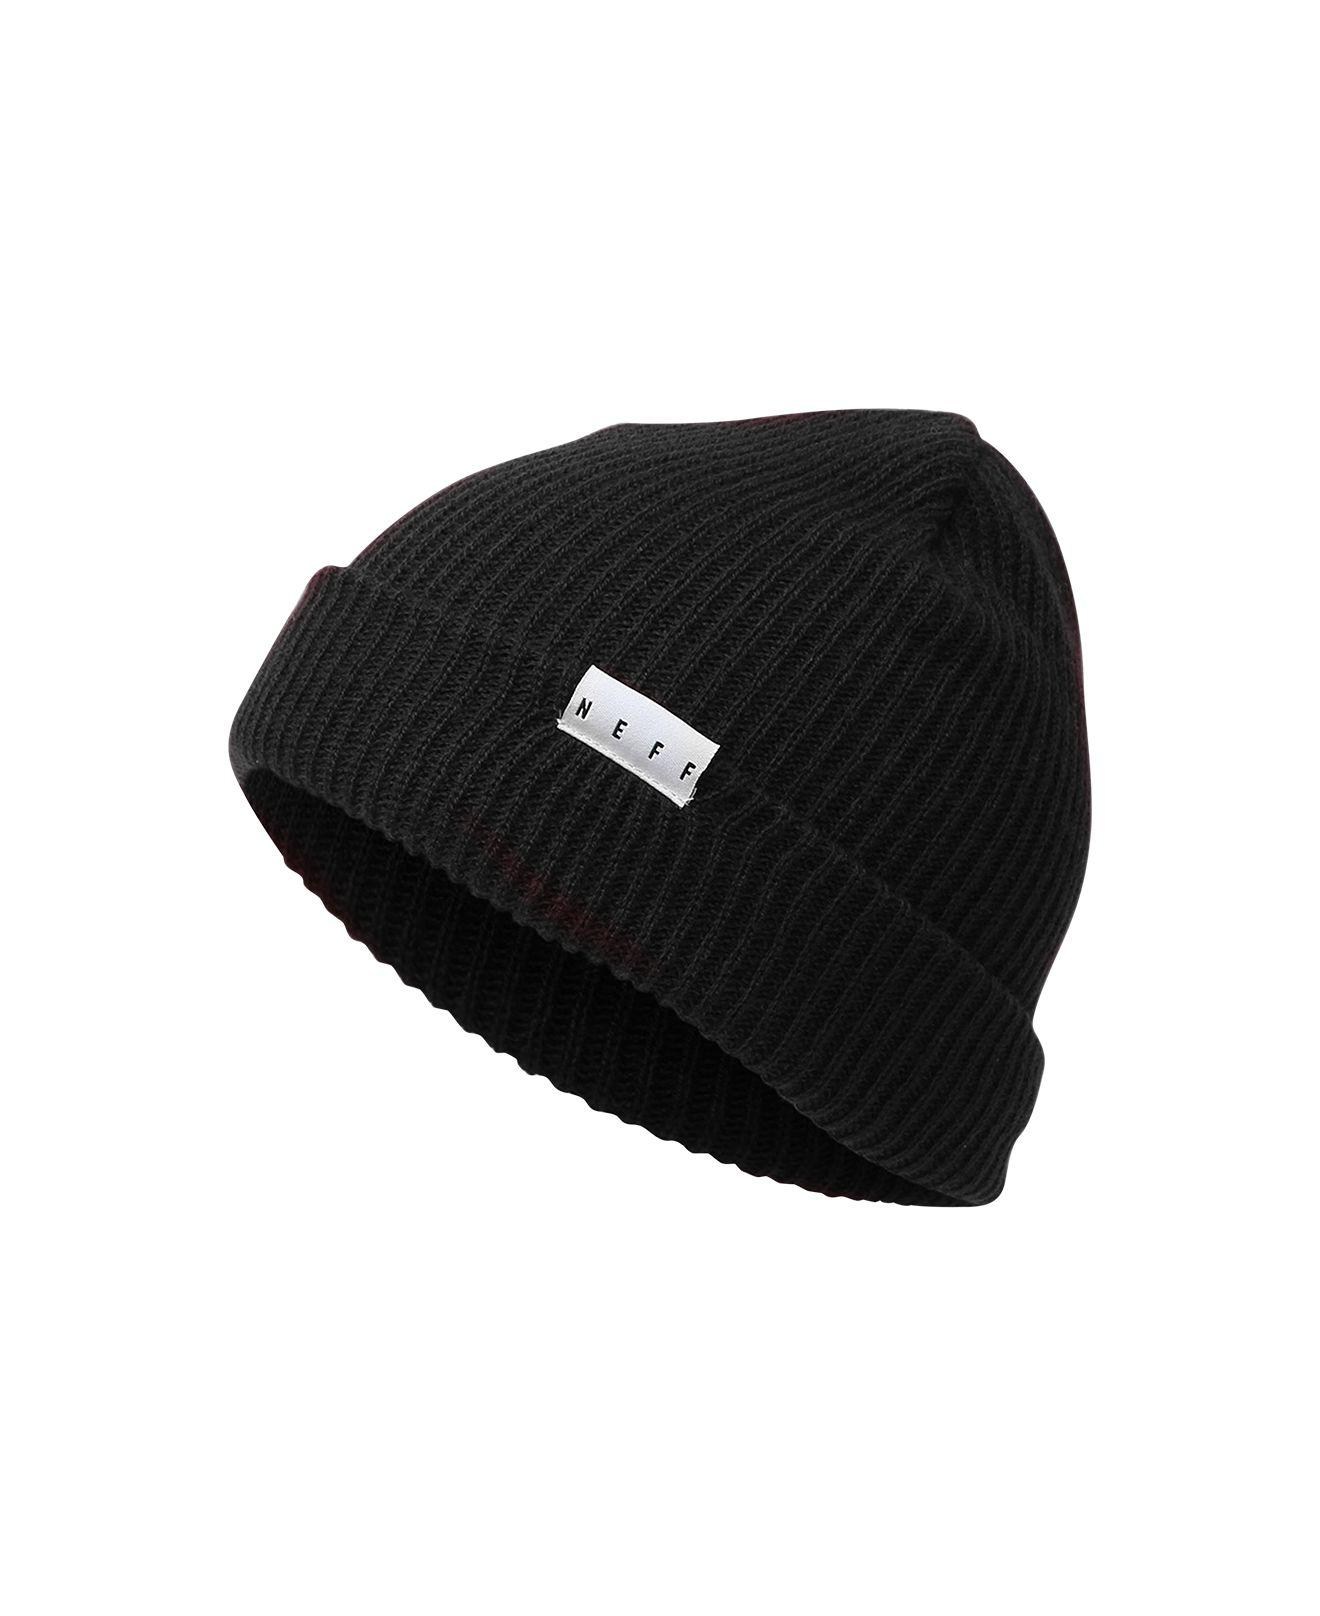 7195f3c0b64 Lyst - Neff Daily Fold Knit Hat in Gray for Men - Save 25.0%